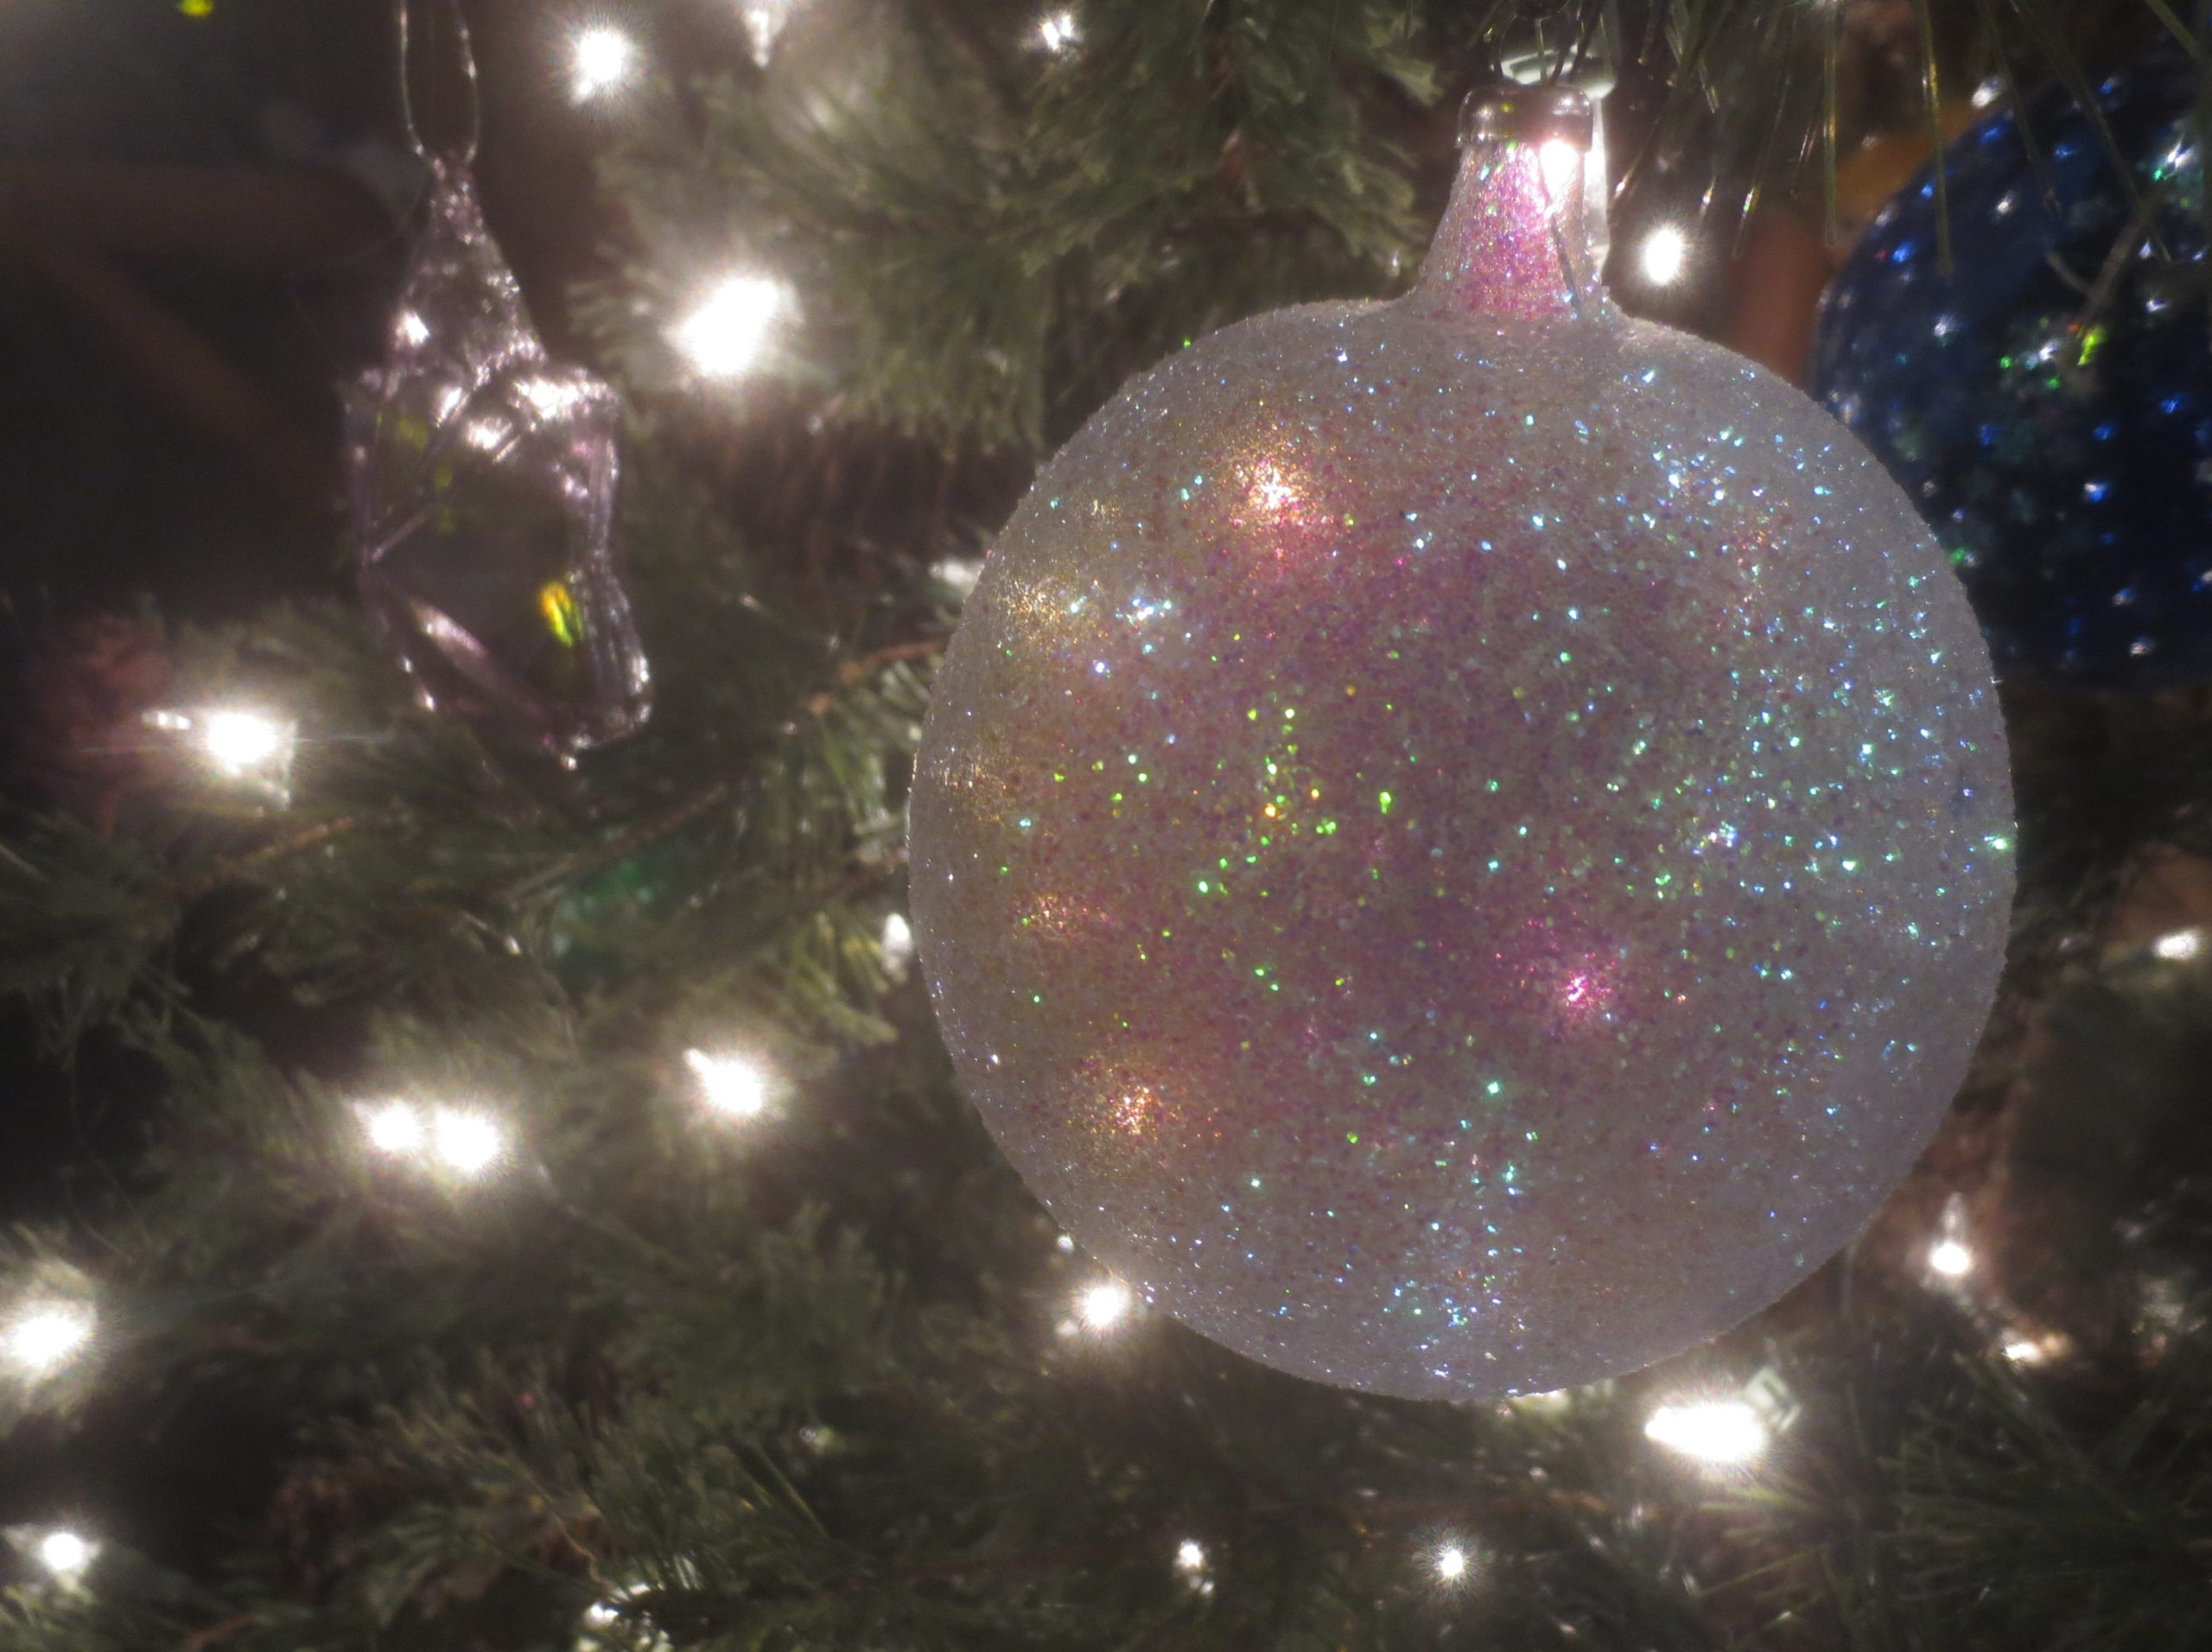 close up of a glittery Christmas ornament